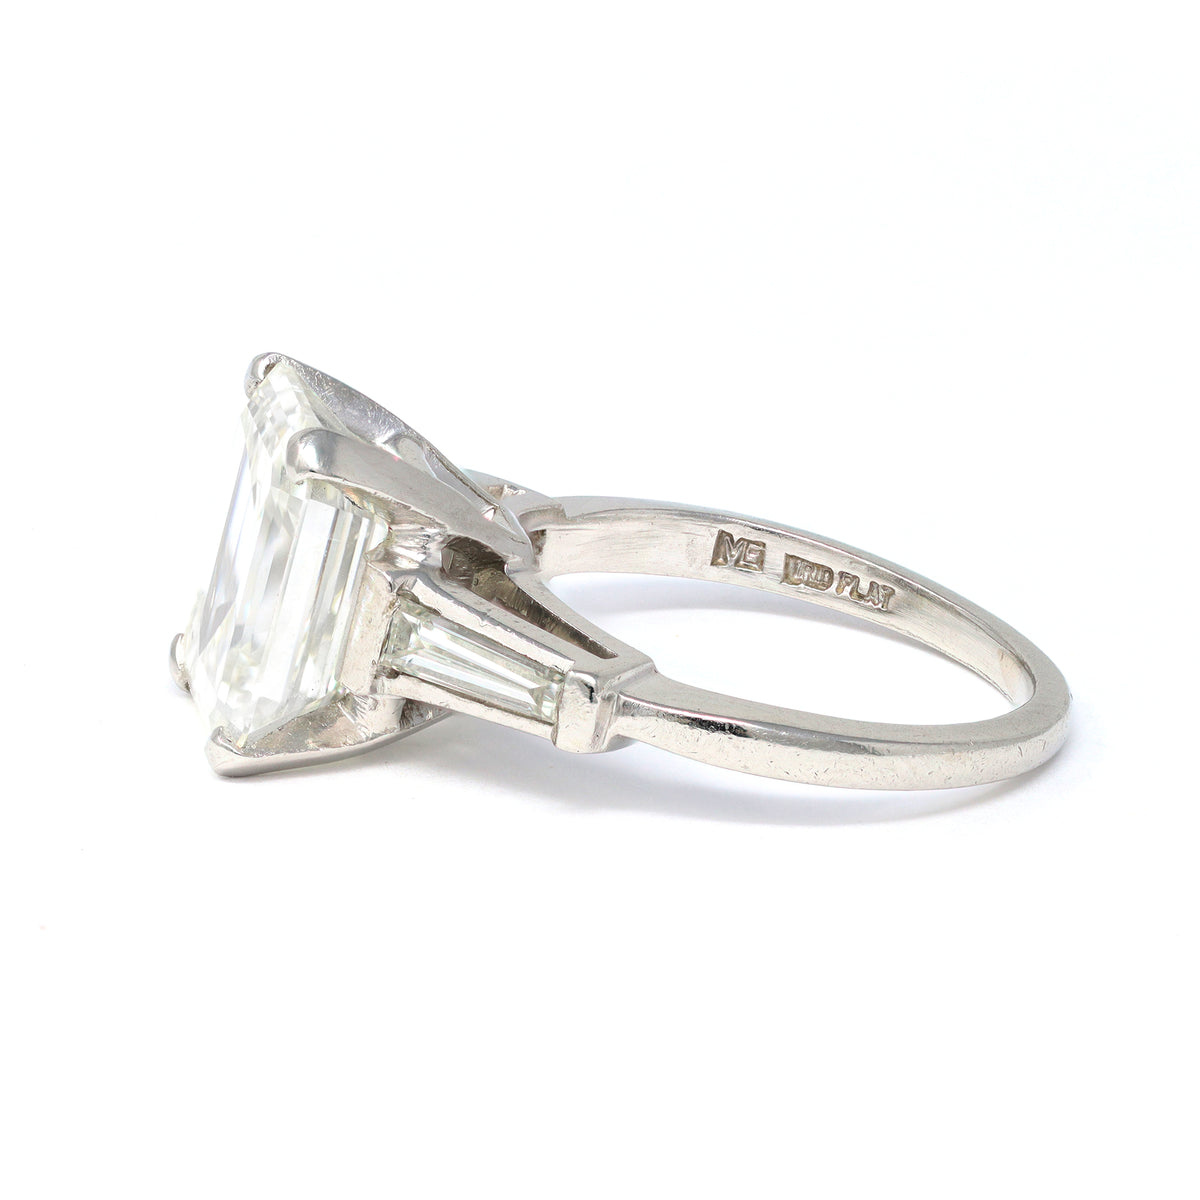 3.83 Carat Emerald-Cut Diamond Engagement Ring in Platinum with GIA Report hallmarks view